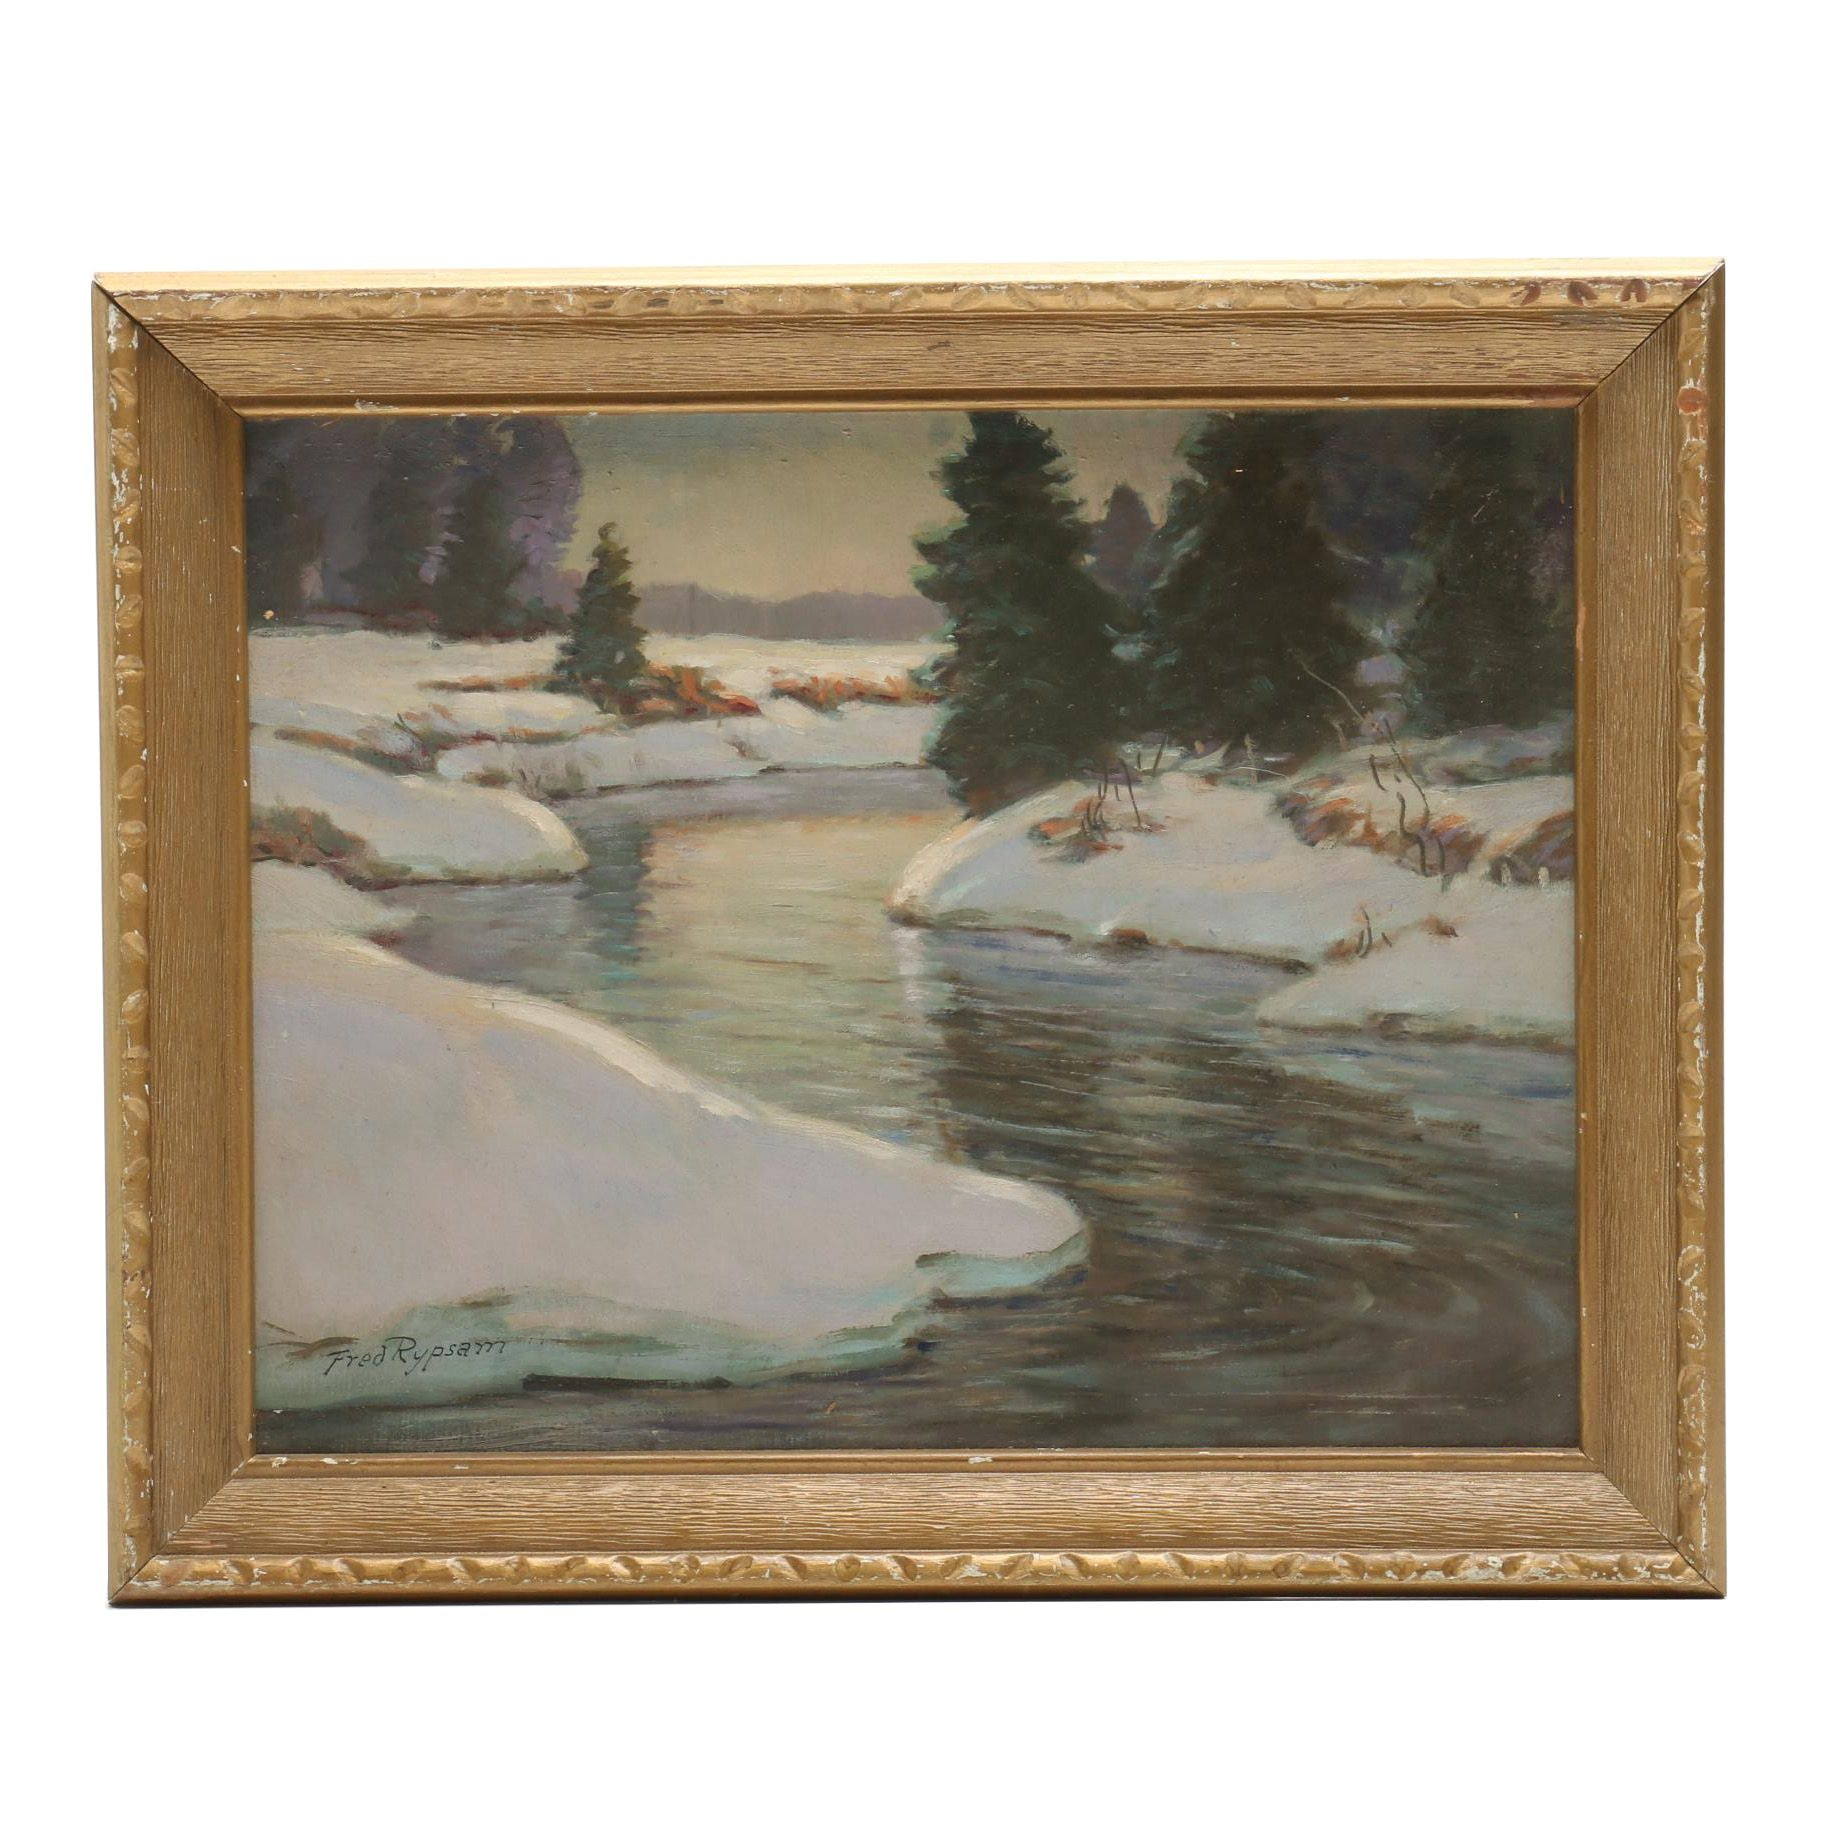 Fred Rypsam Oil Painting of a Winter Landscape